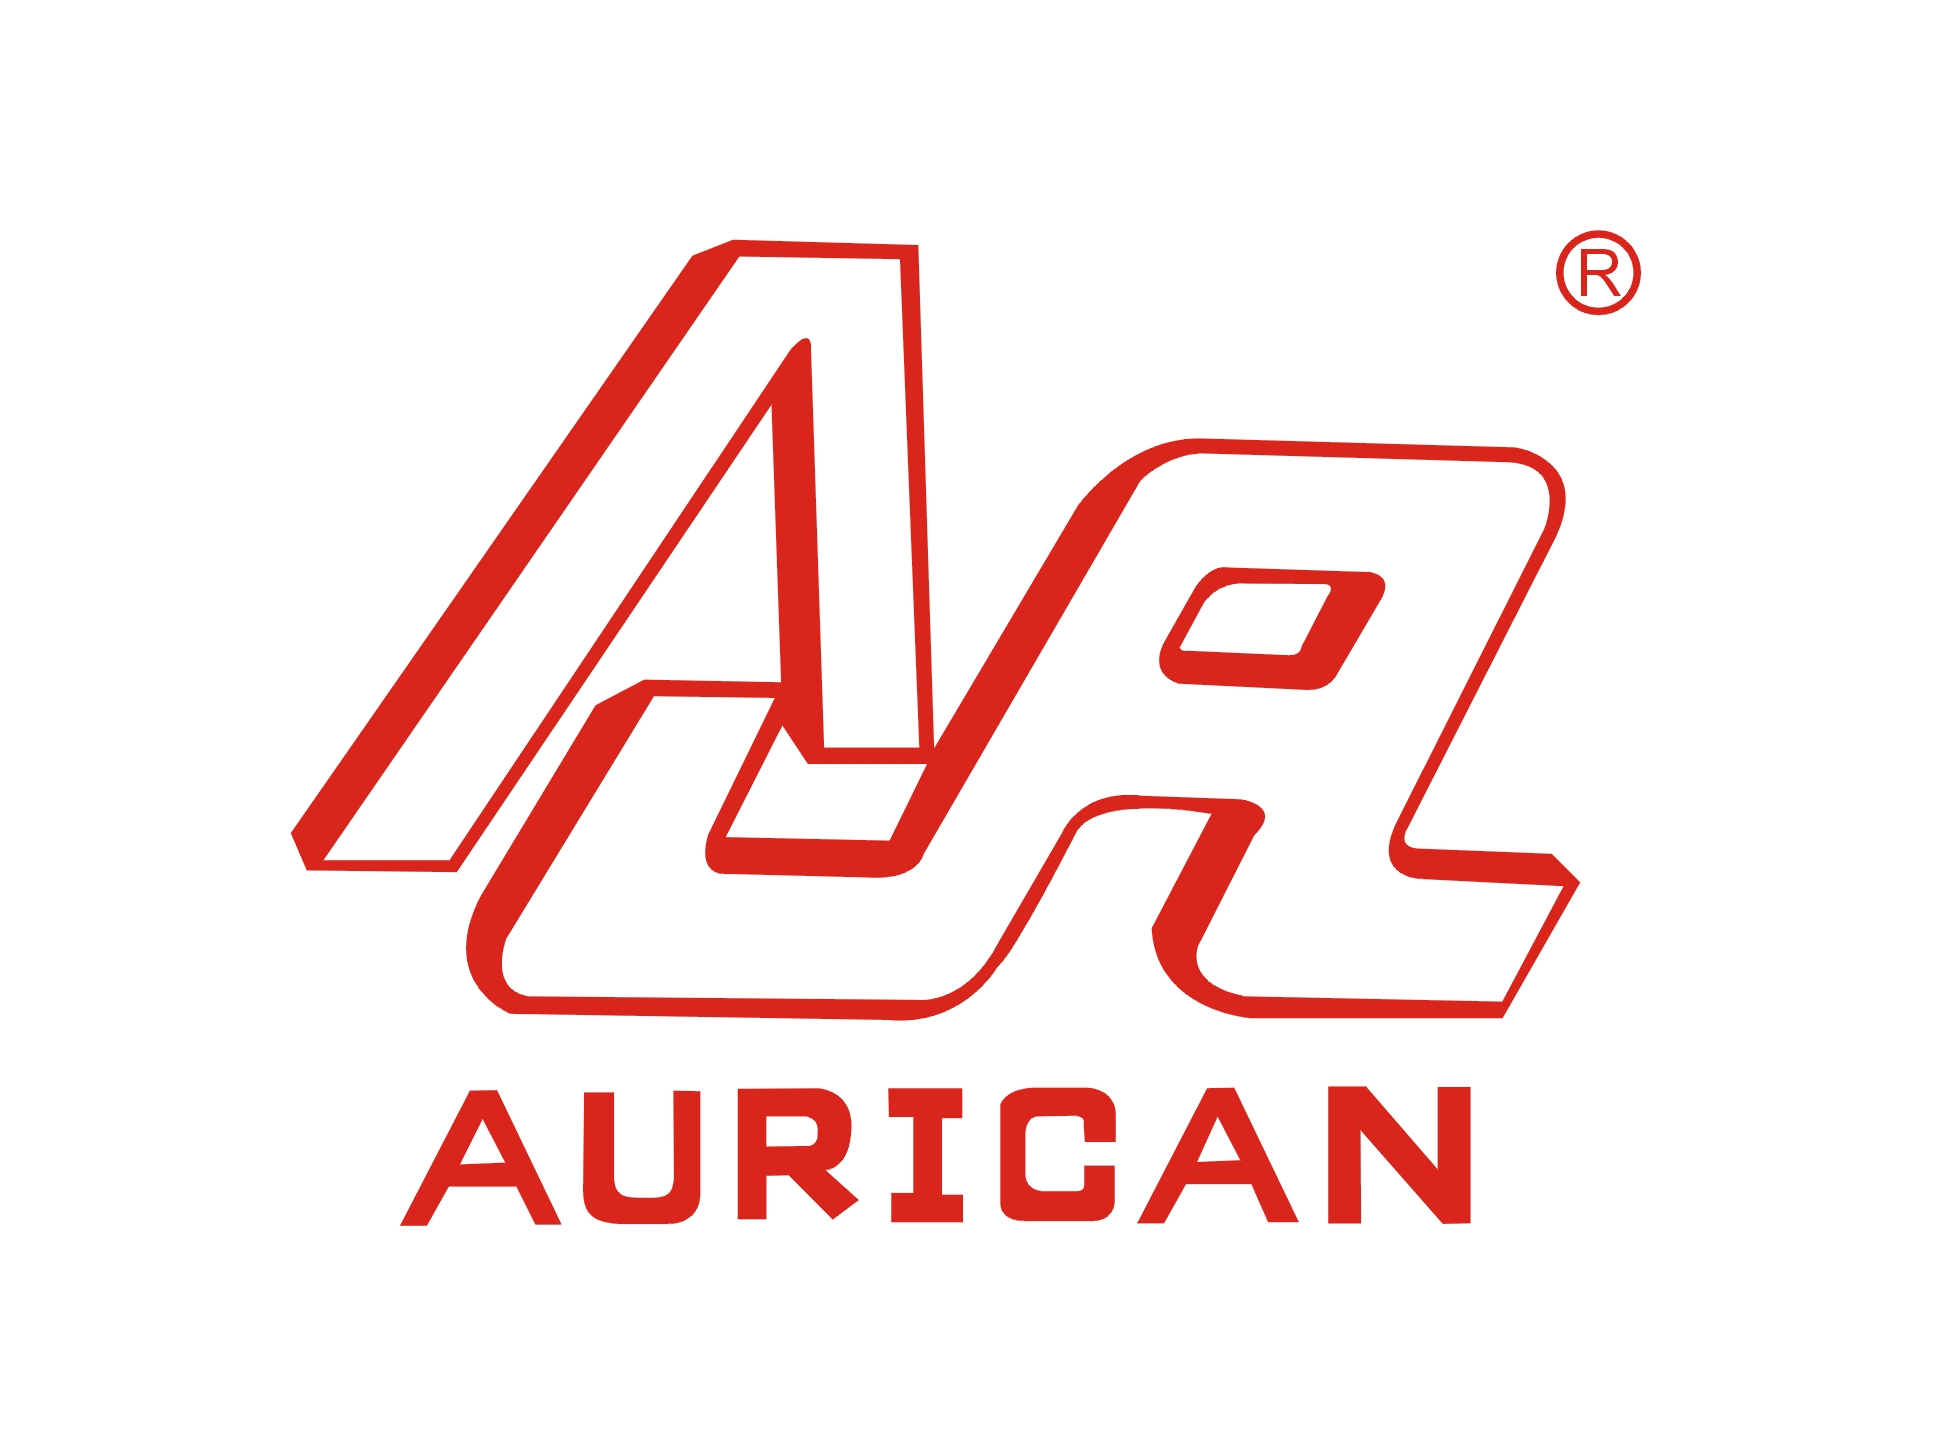 GUANGDONG AURICAN HARDWARE TECHNOLOGY COMPANY, LIMITED.